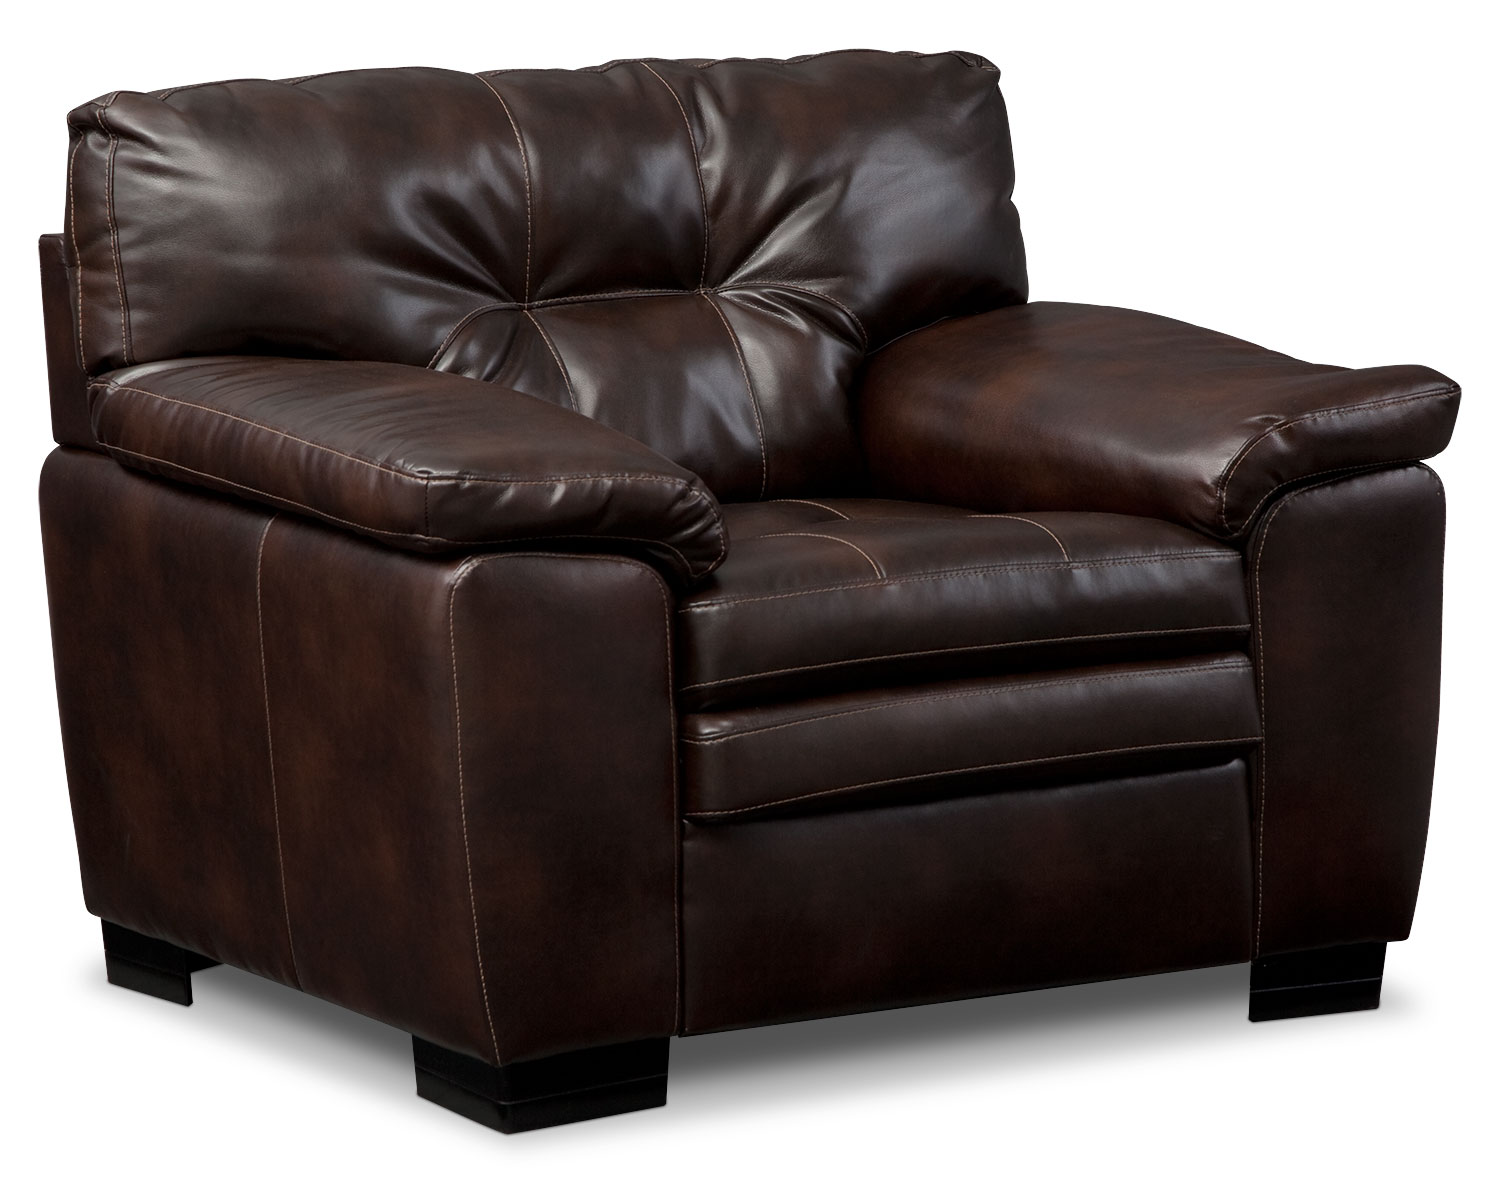 Living Room Furniture - Magnum Chair